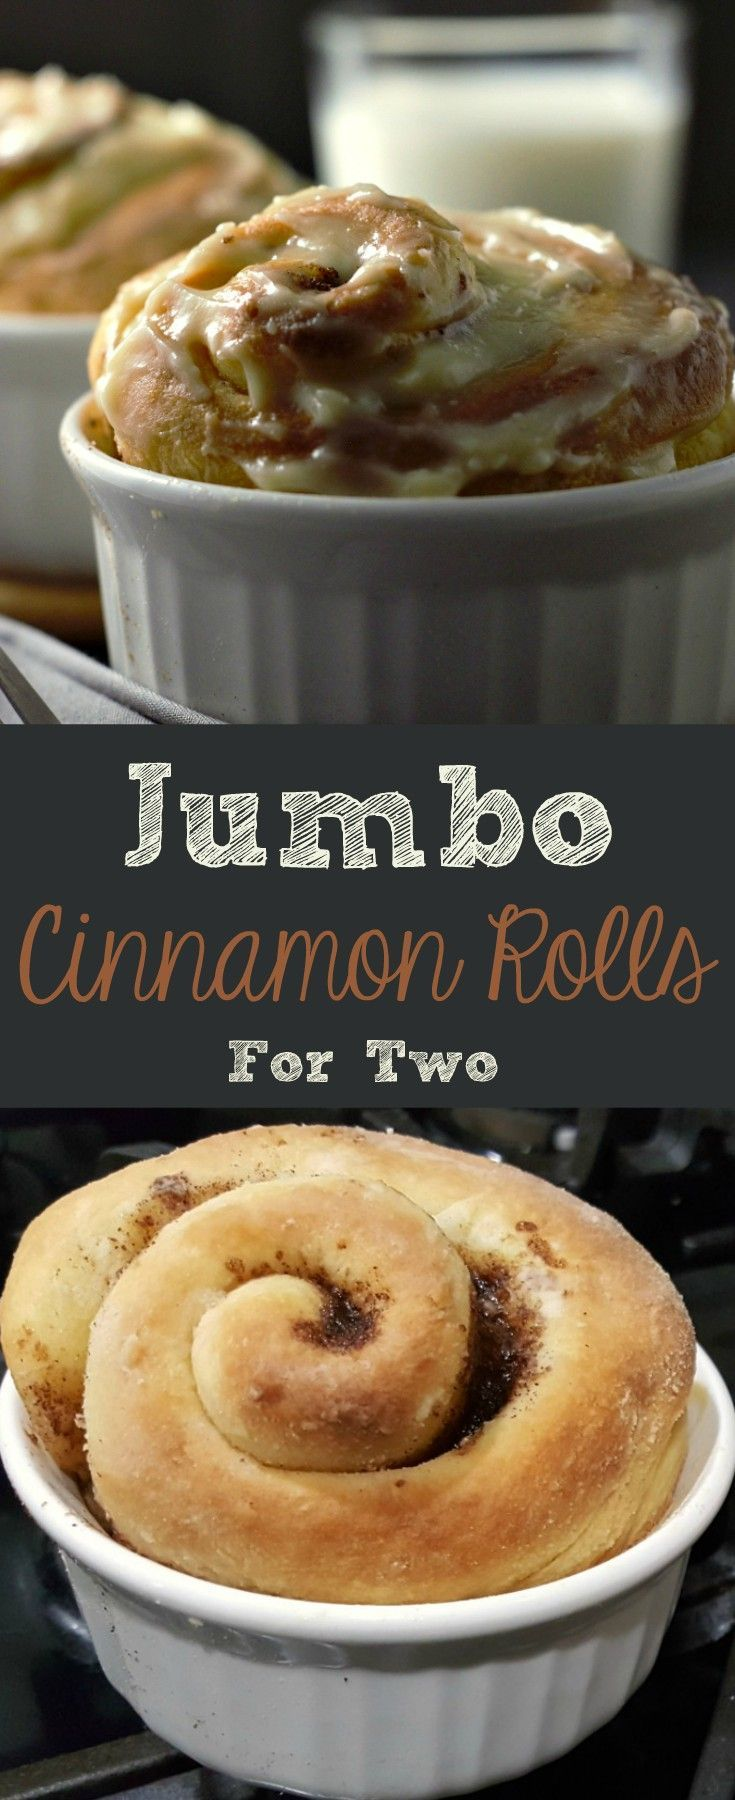 These homemade Jumbo Cinnamon Rolls are incredibly soft and fluffy with a delicious sugar cinnamon filling and sweet cream cheese frosting. As I'm writing this post on Valentine's Day I find myself in love with these cinnamon rolls! This small batch recipe makes a great romantic breakfast or dessert for two. #CinnamonRolls #breakfast #BreakfastForTwo #DessertForTwo #dessert #homemade